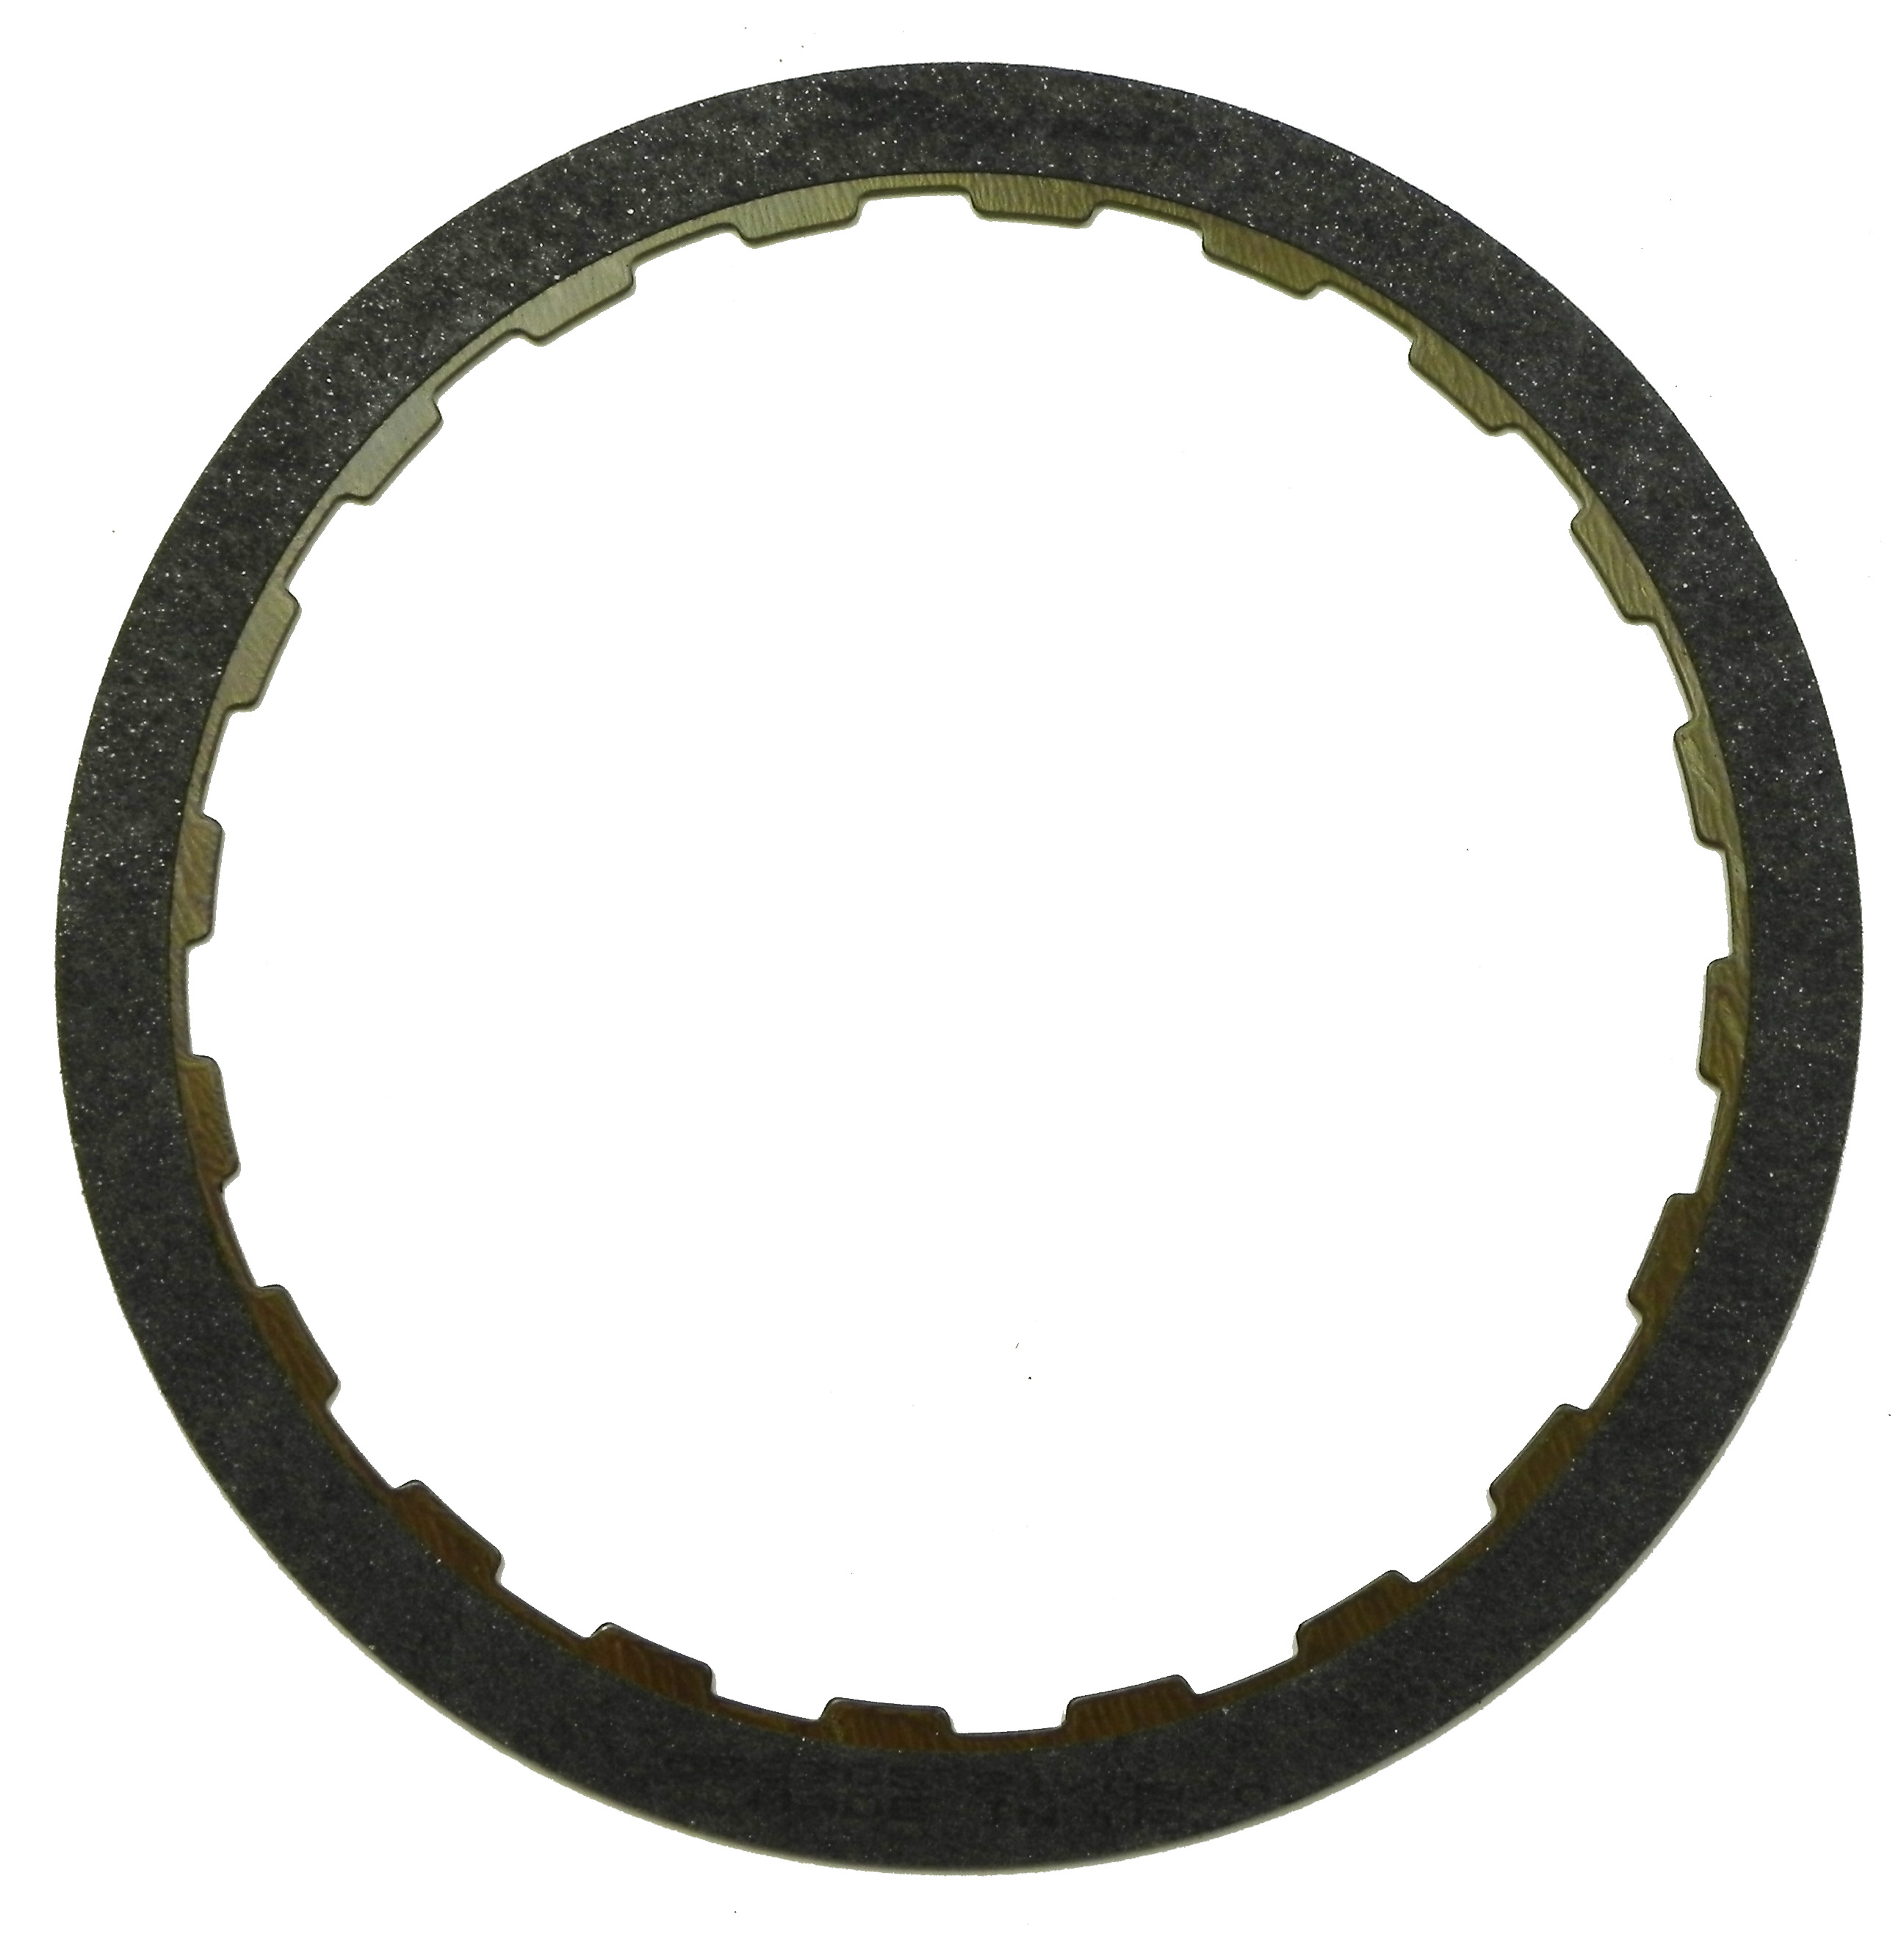 R558305 | 2001-ON Friction Clutch Plate High Energy 3rd, 4th Clutch High Energy 4L65E